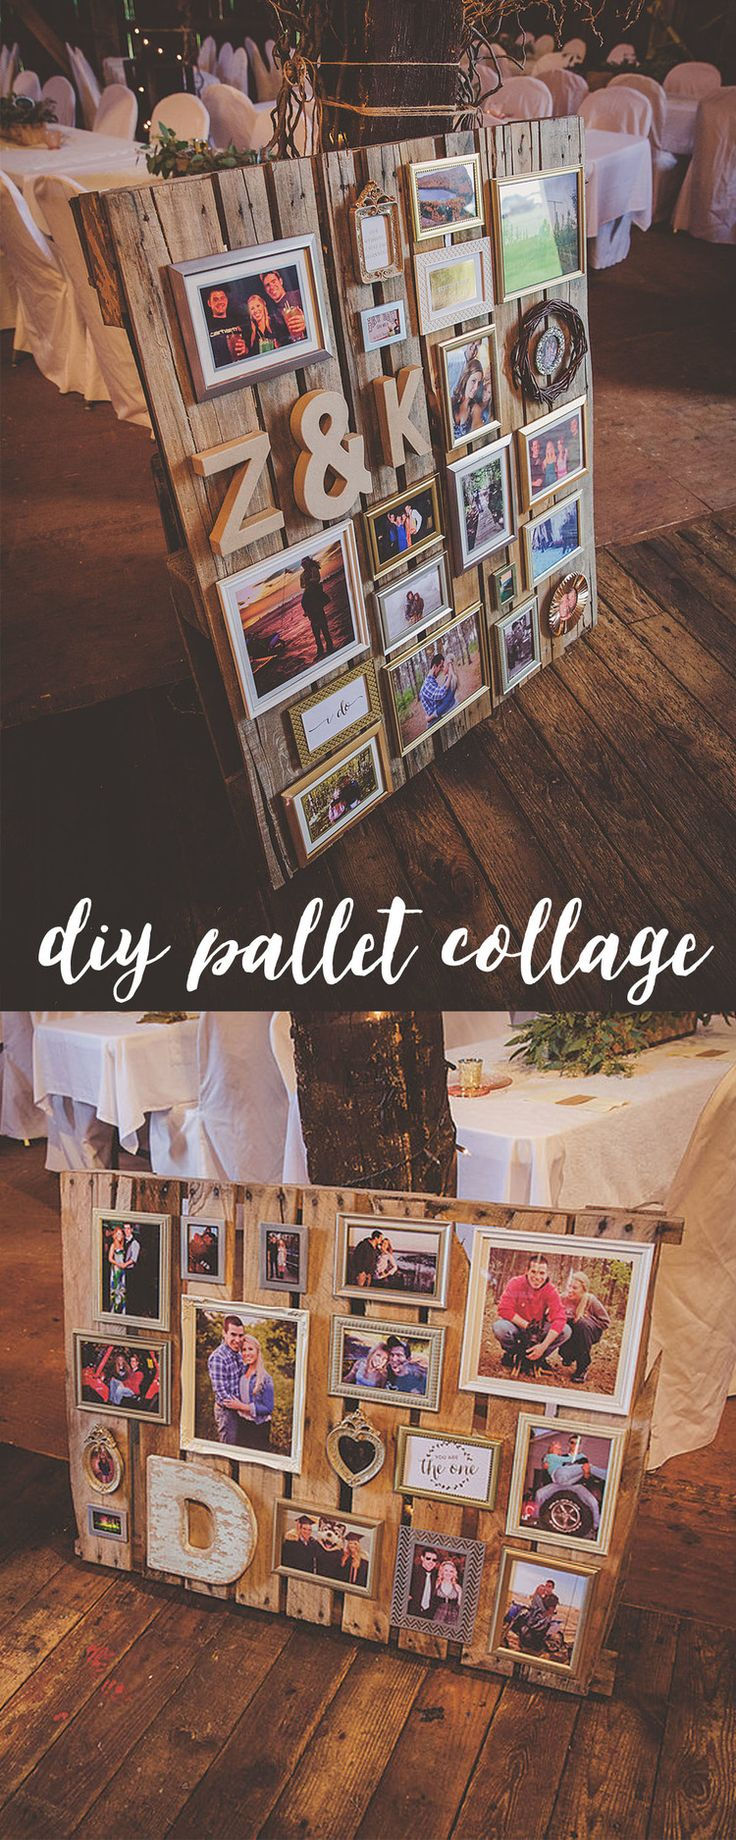 DIY wedding pallet collage